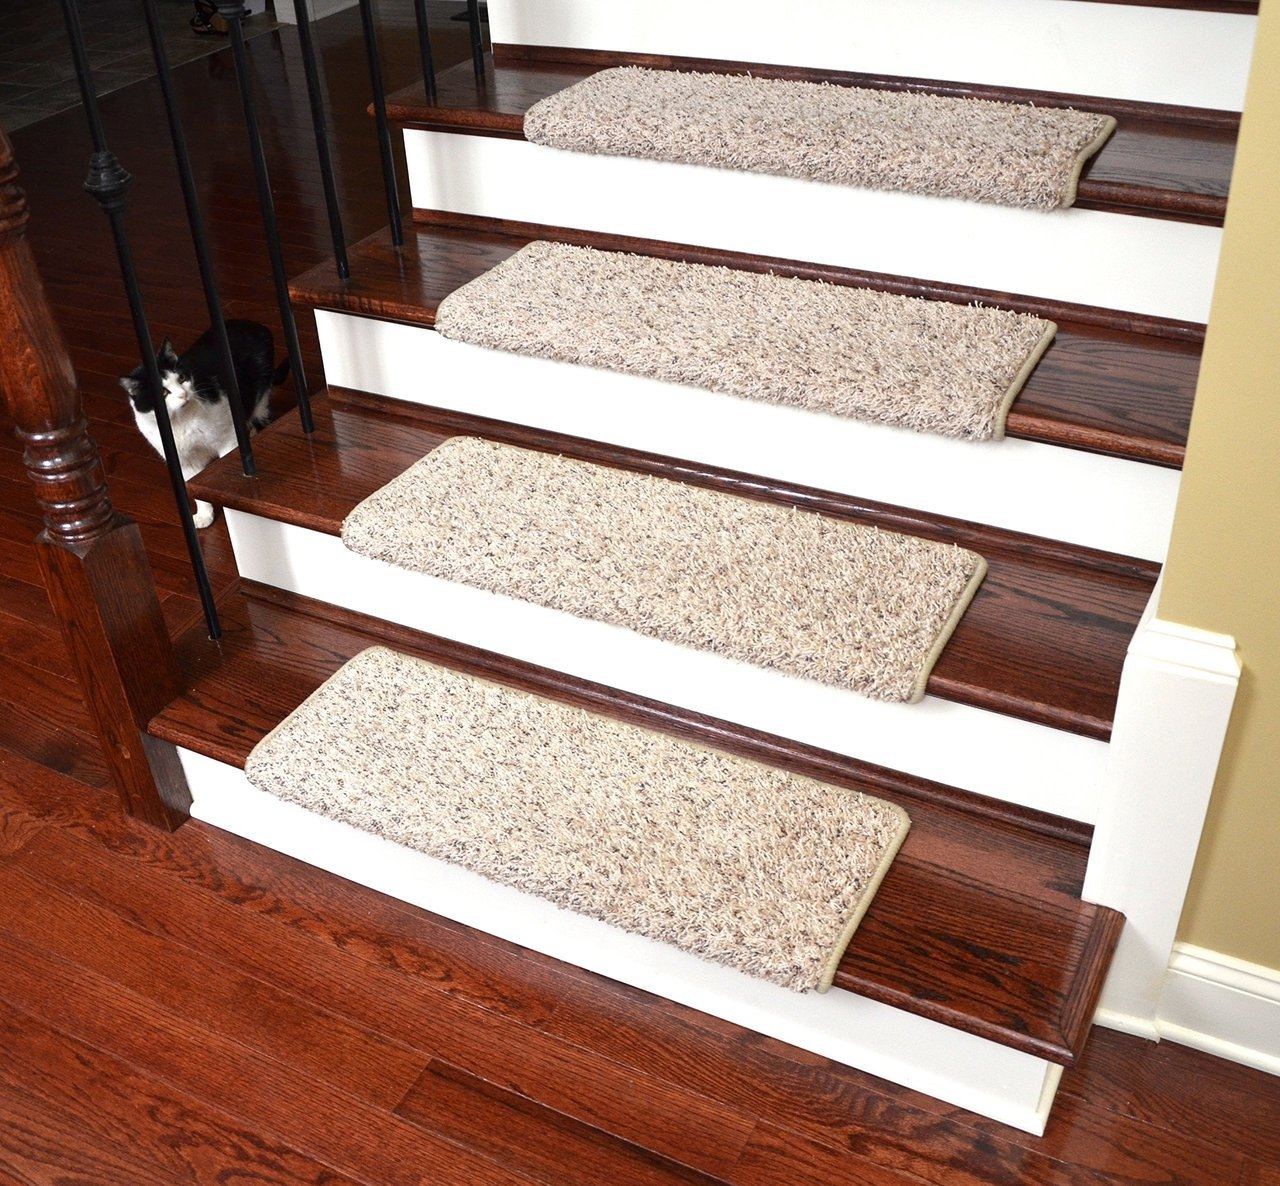 Carpet Stair No Slip Stair Carpet Natural Stair Carpet Or Wood Within Removable Carpet Stair Treads (#8 of 20)